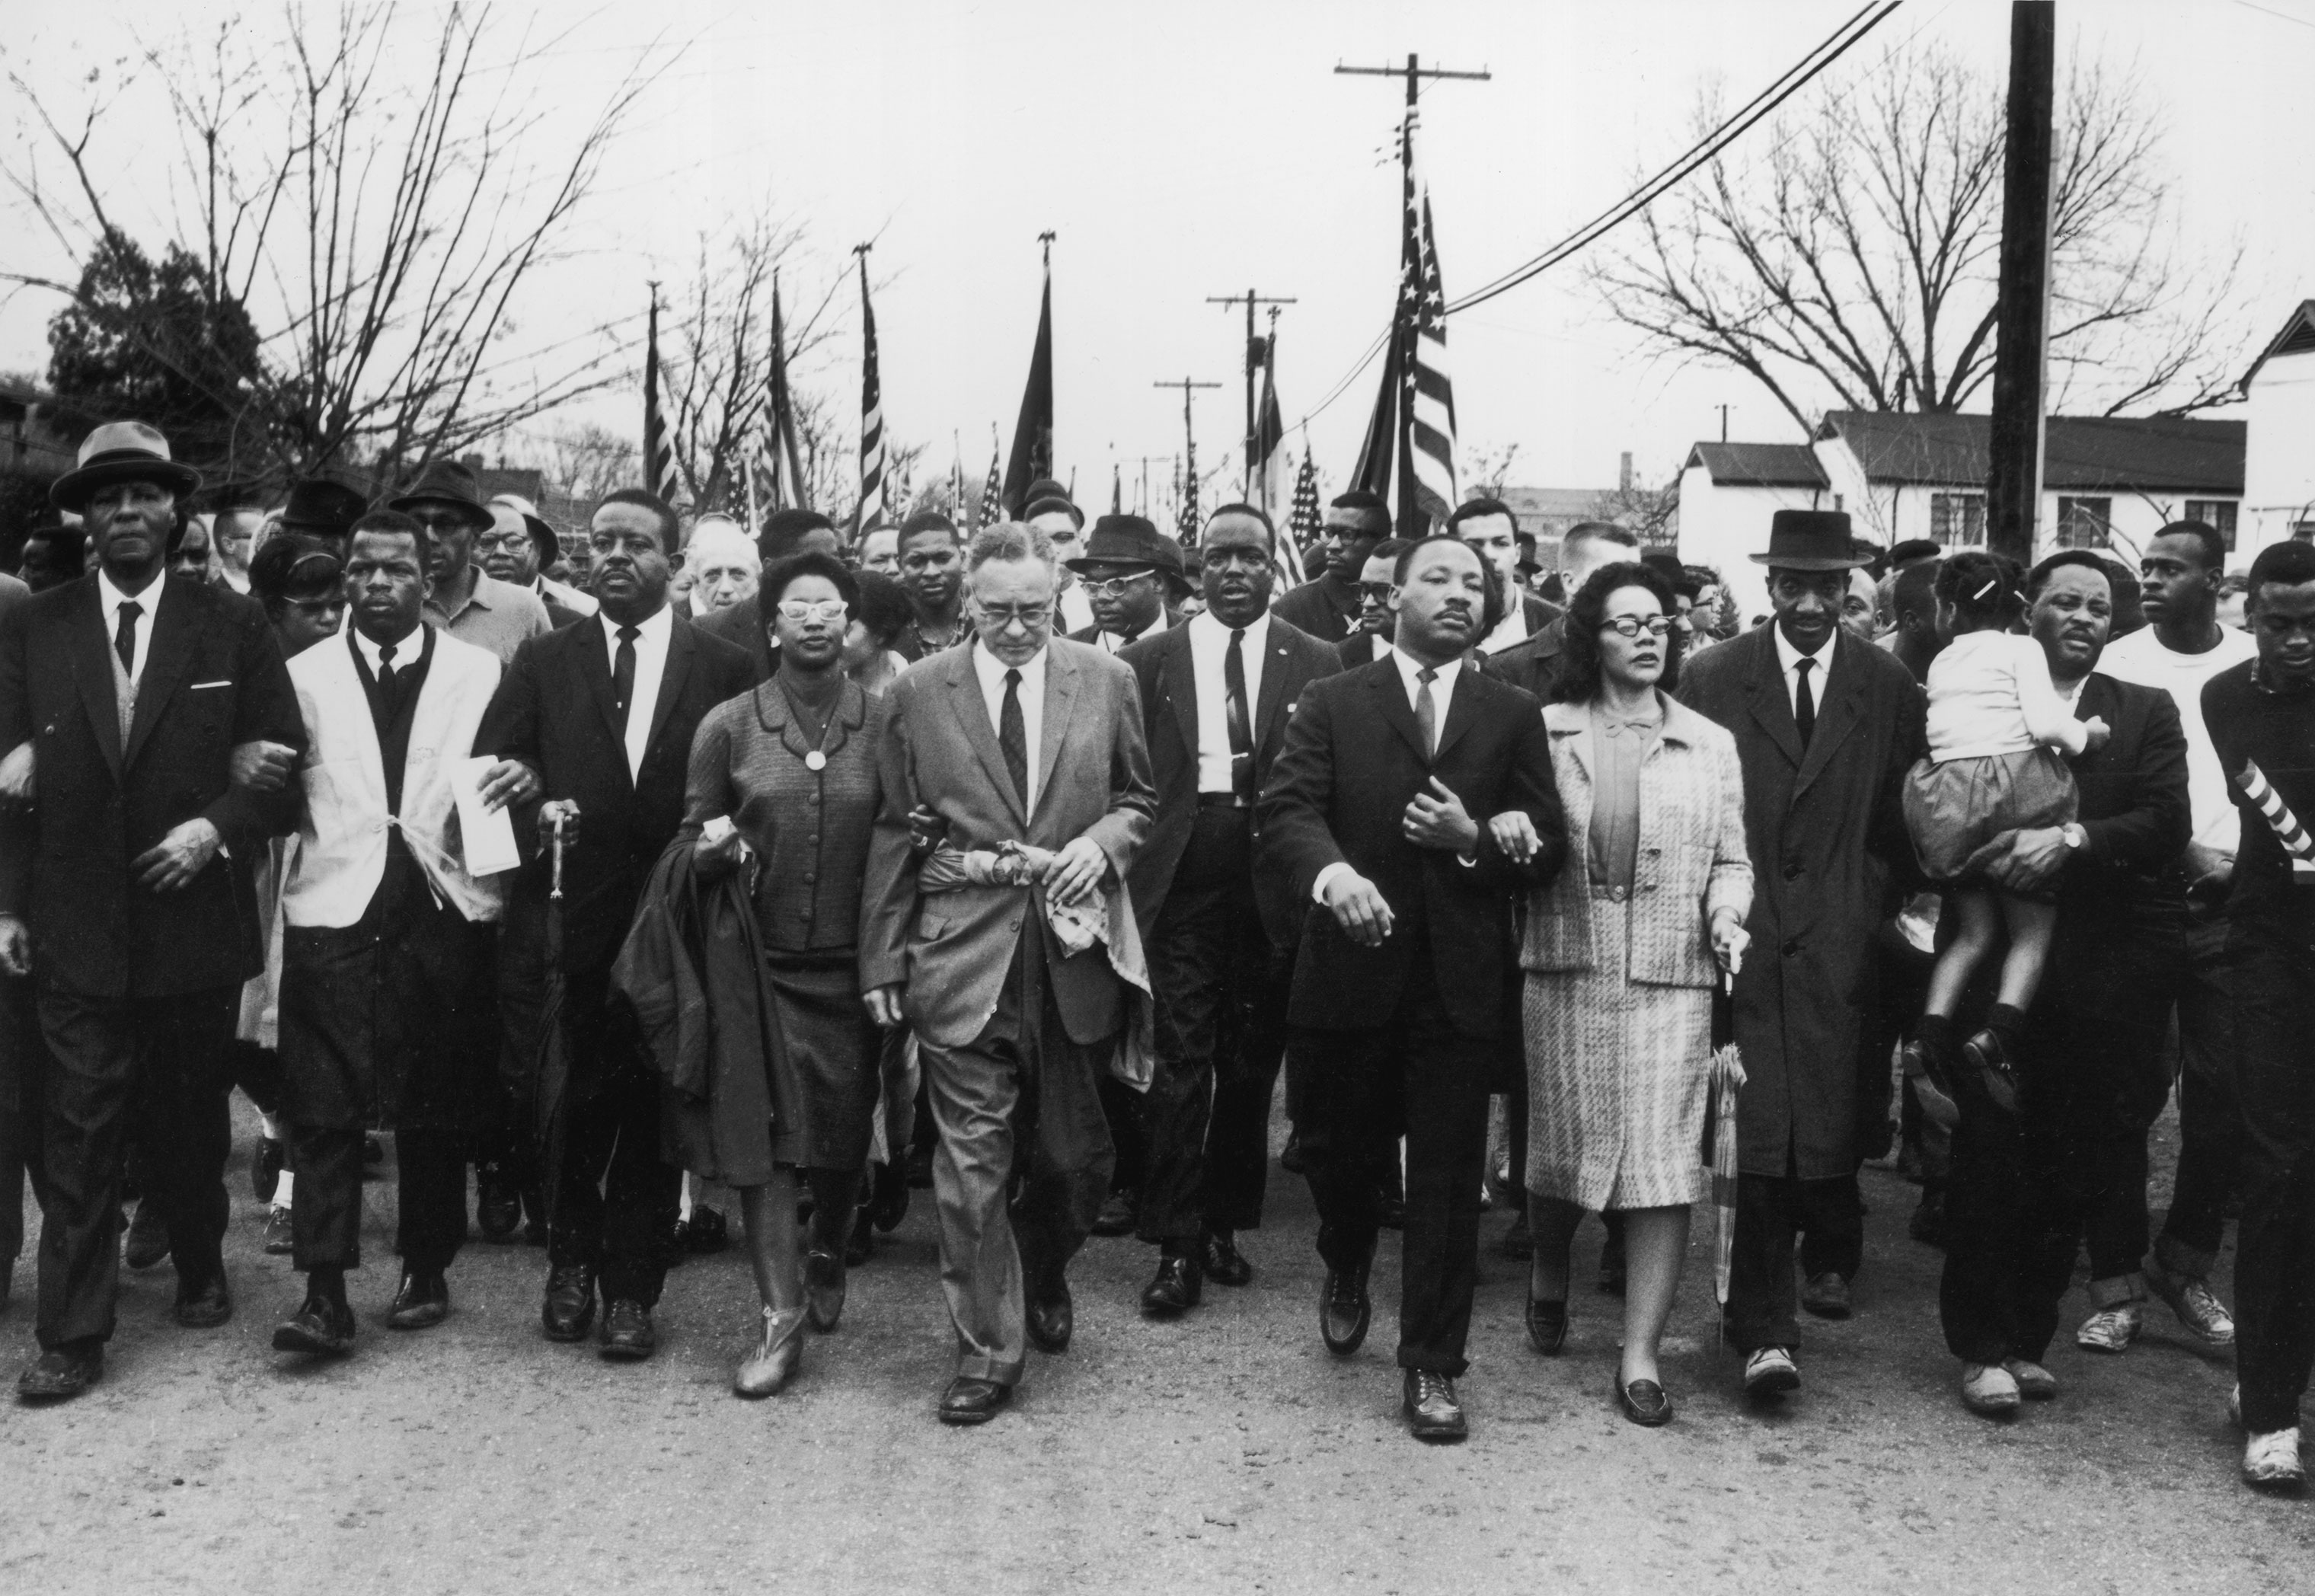 John Lewis (second from left) joins American civil rights campaigner Martin Luther King Jr. and his wife Coretta Scott King in a march from Selma, Alabama, to the state capital in Montgomery, March 30, 1965.